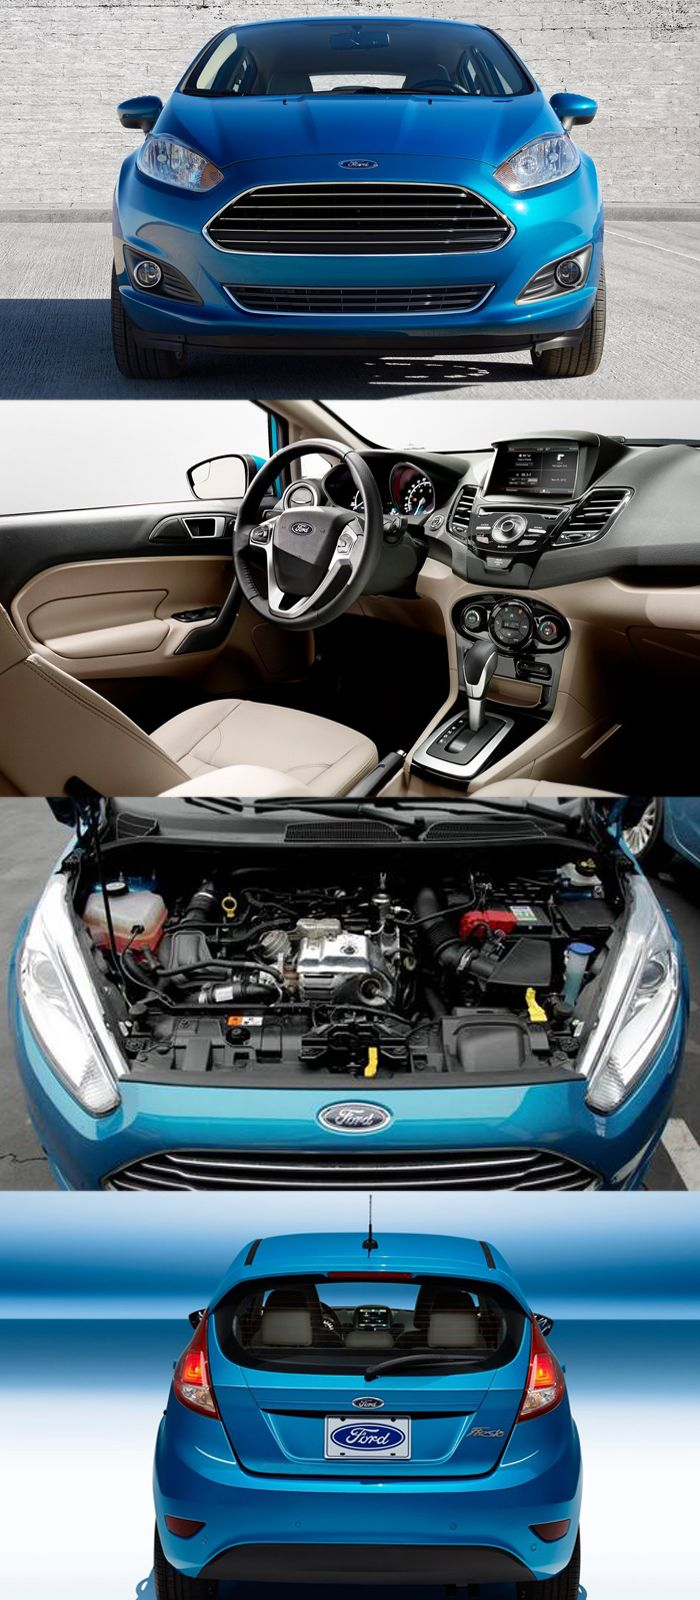 Why ford fiesta is still the best seller in the uk get info https